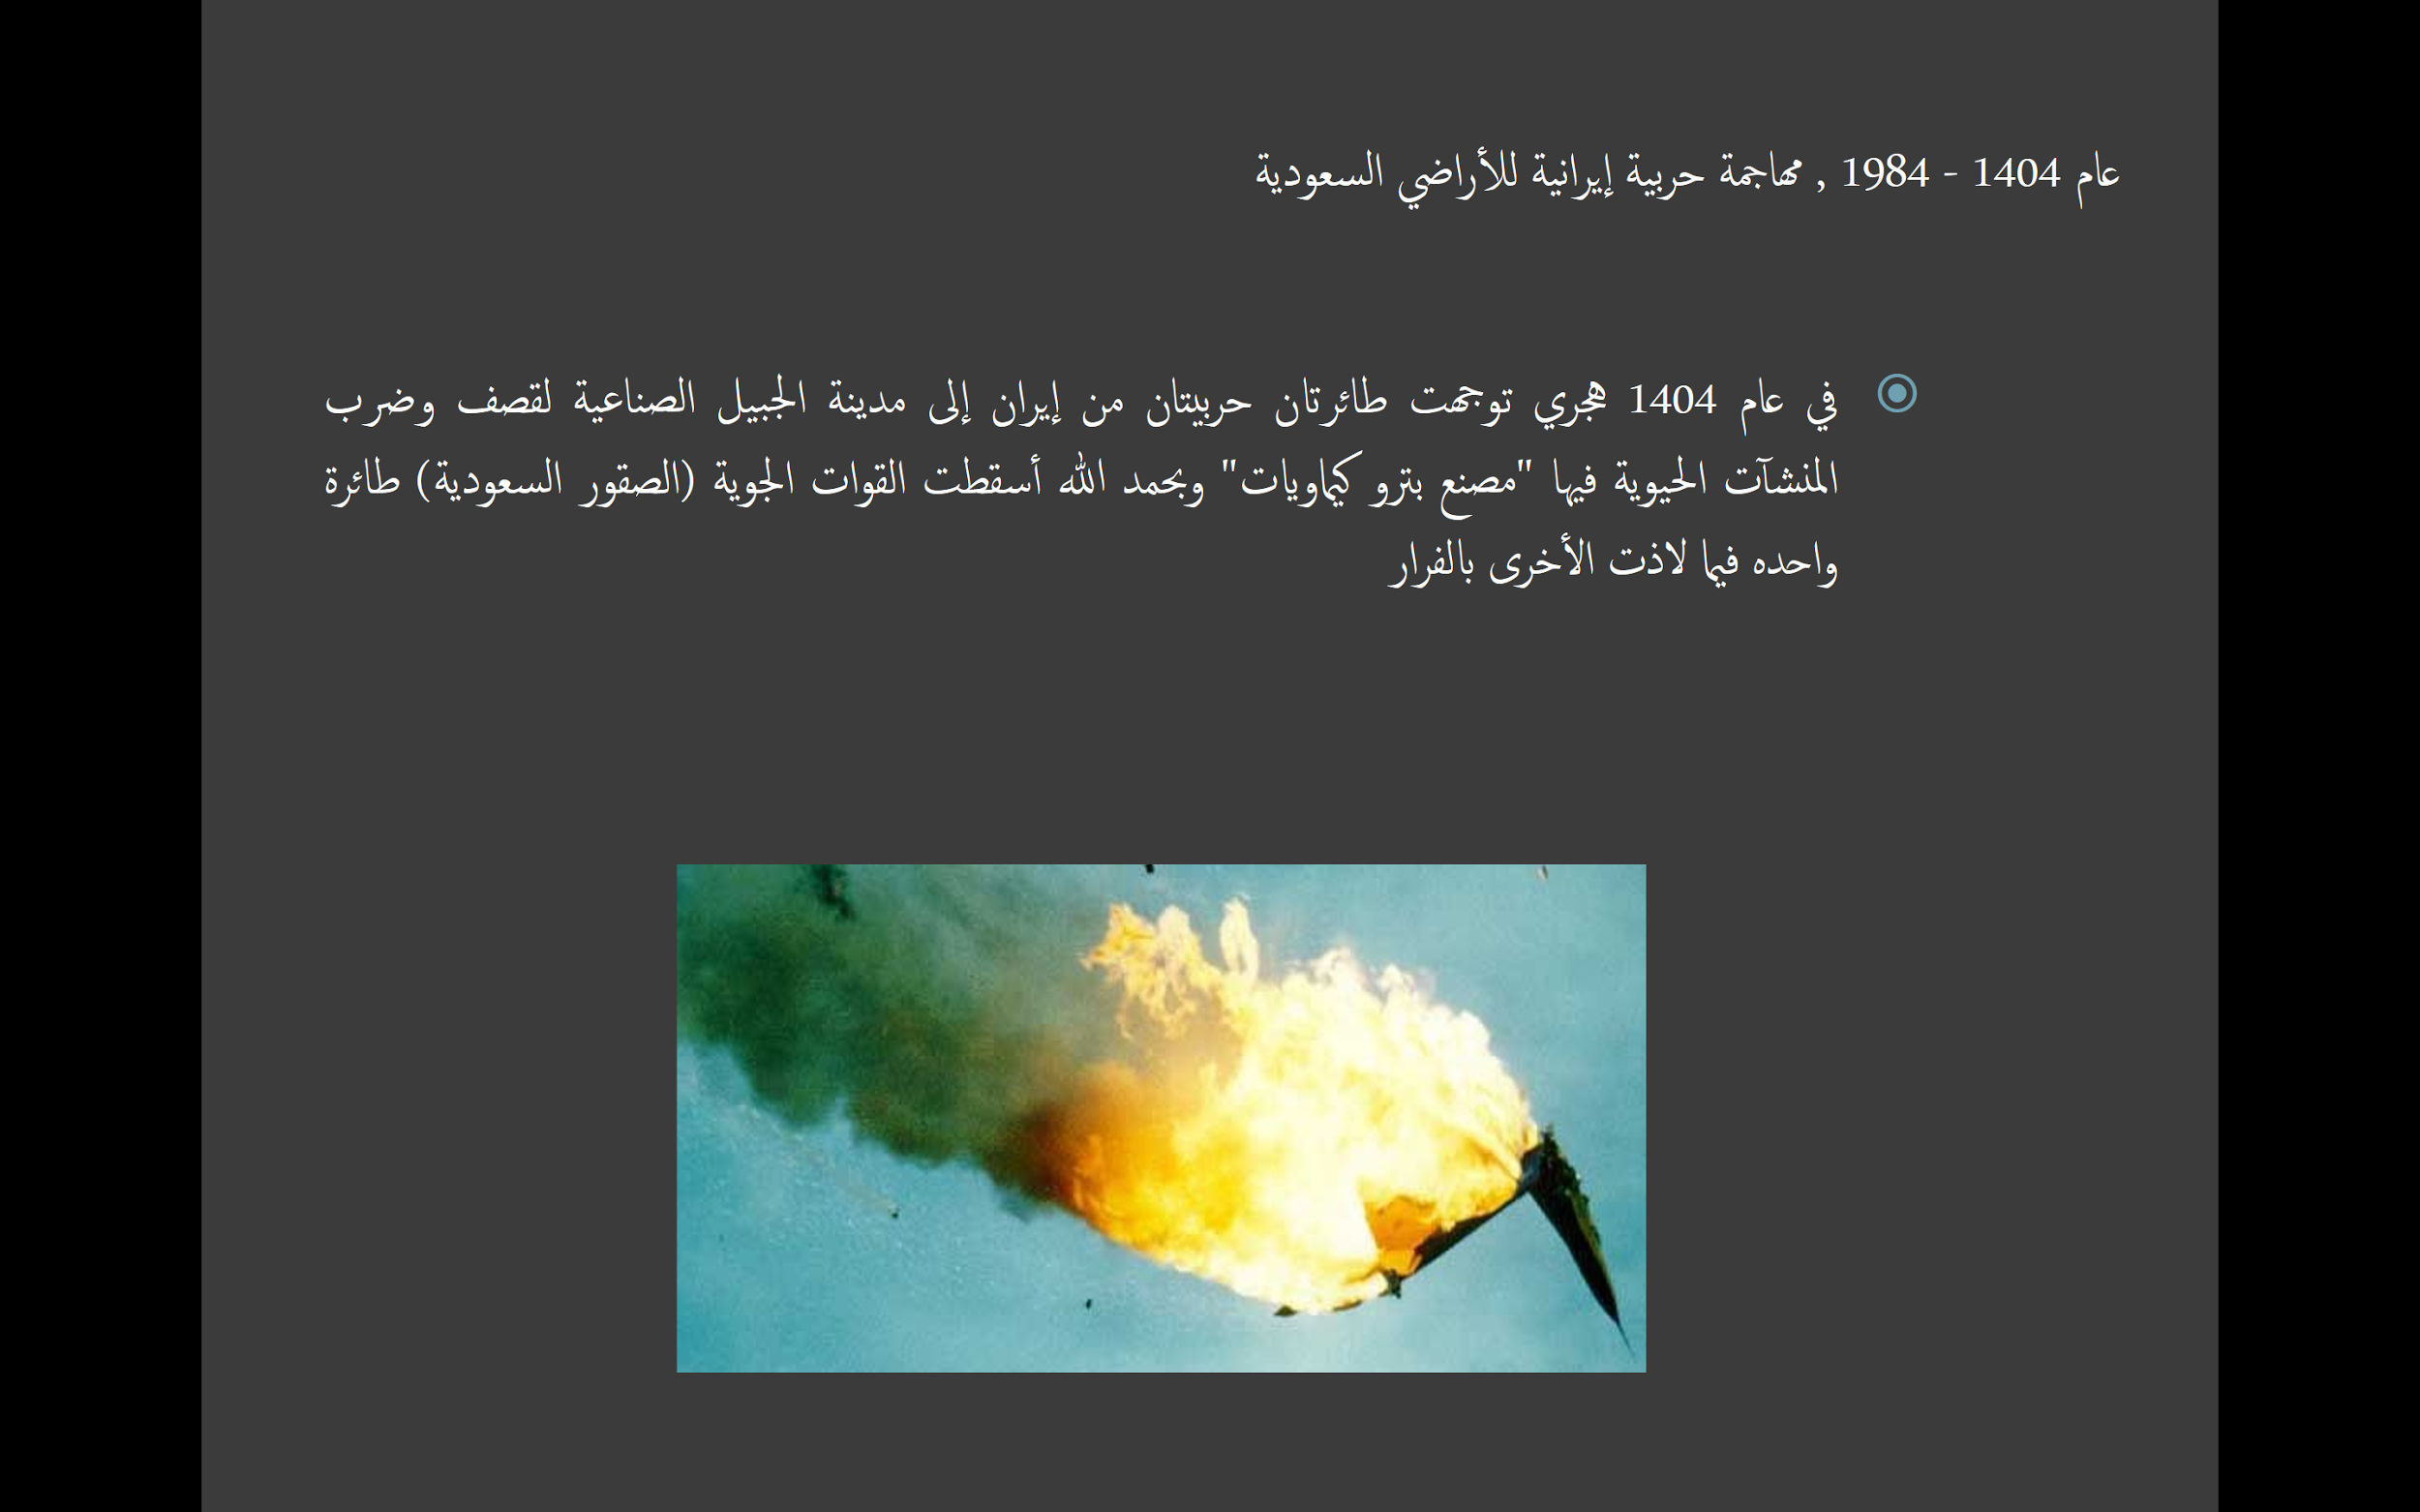 Figure 2: Screenshot from a slide referred to an Iranian attack in 1984 against petrochemical facilities in Saudi Arabia.